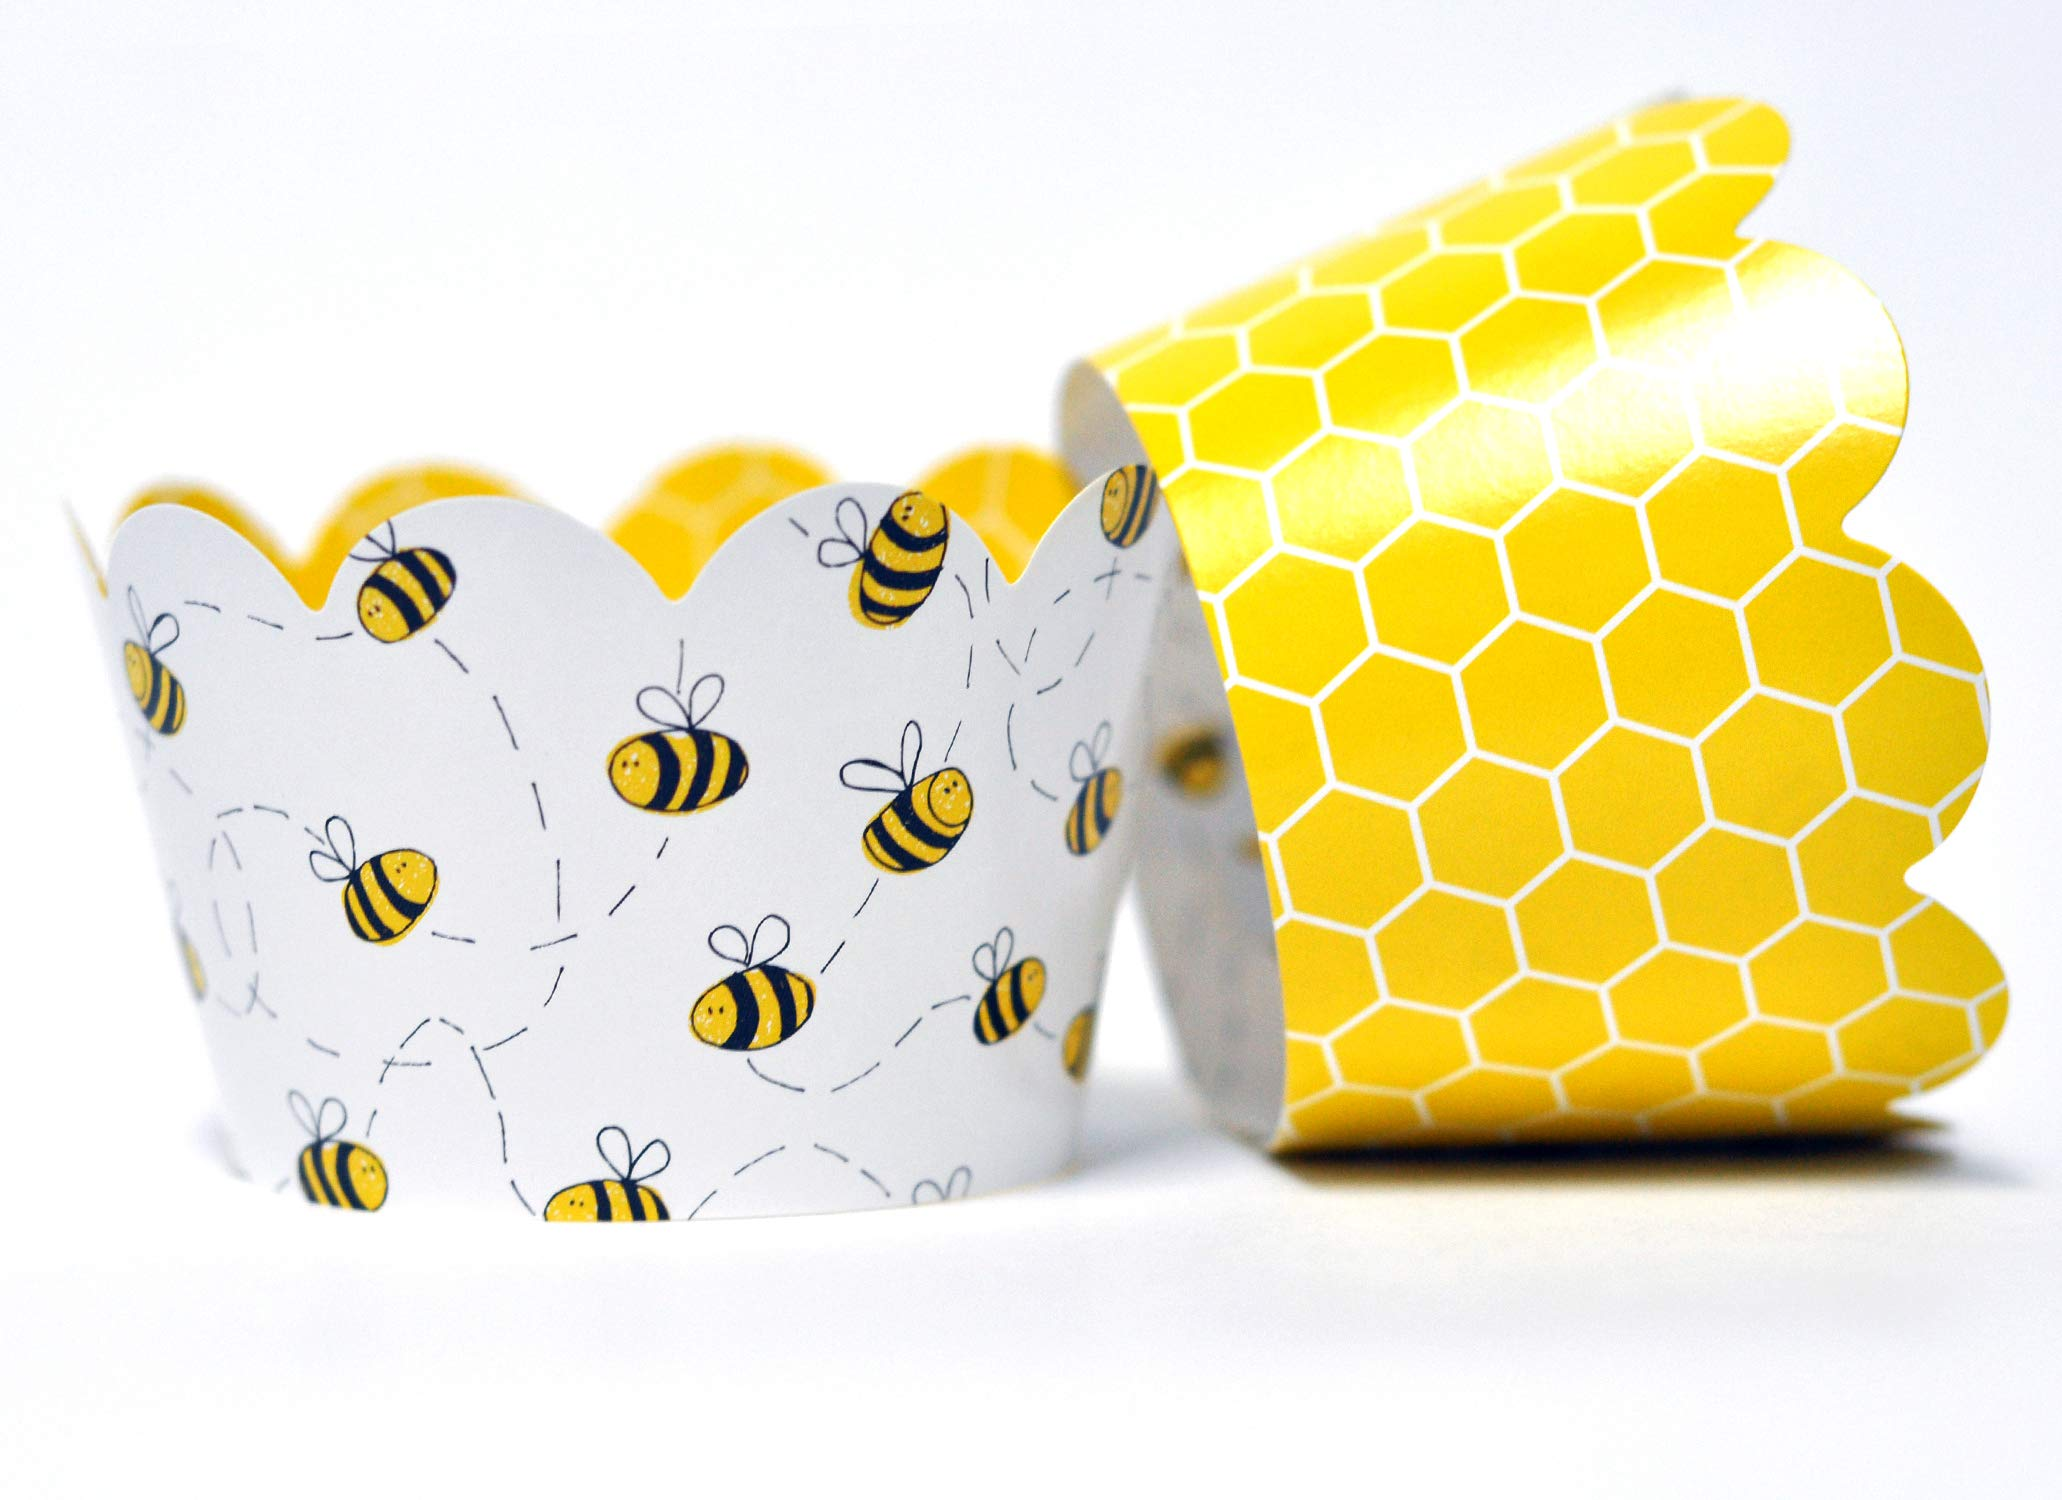 Honey Bee Cupcake Wrappers for Gender Reveal, Birthday Parties, Bridal Showers, Baby Showers, or Backyard Summer gatherings. Set of 24 Honey Bee Scalloped Cup Cake Holder Wraps. Yellow, Black by Toula Products